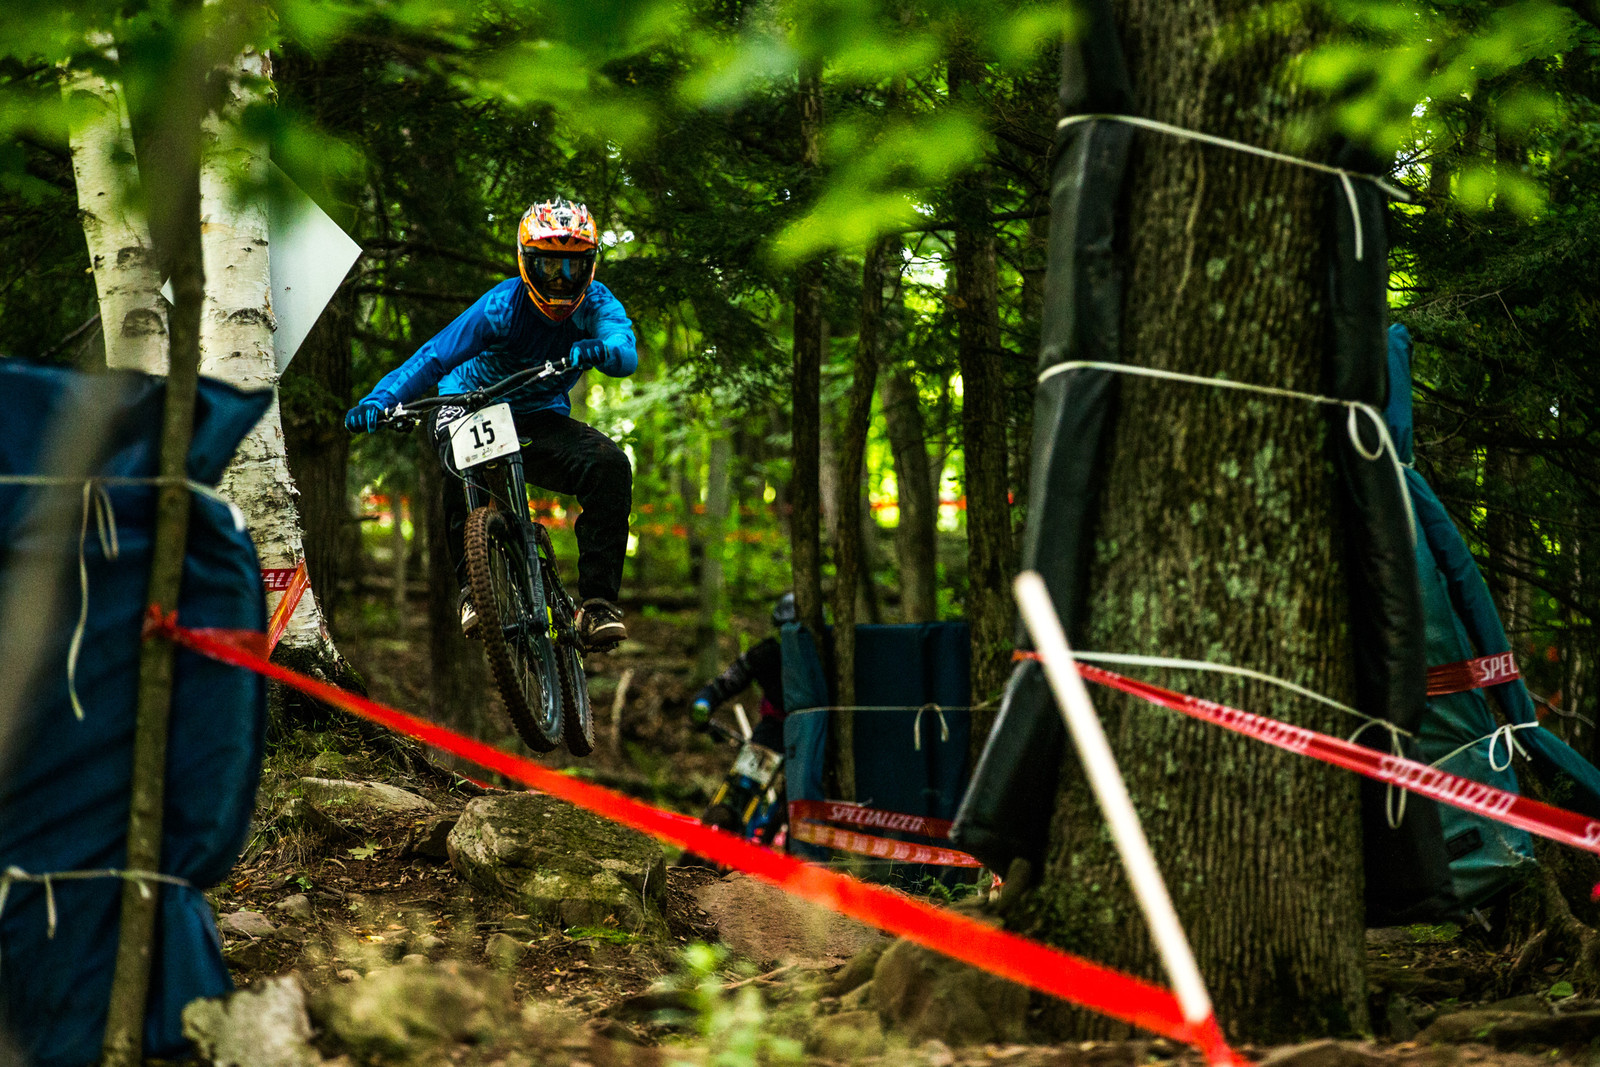 James Frost - RACE DAY GALLERY - 2017 Pro GRT, Windham, NY - Mountain Biking Pictures - Vital MTB